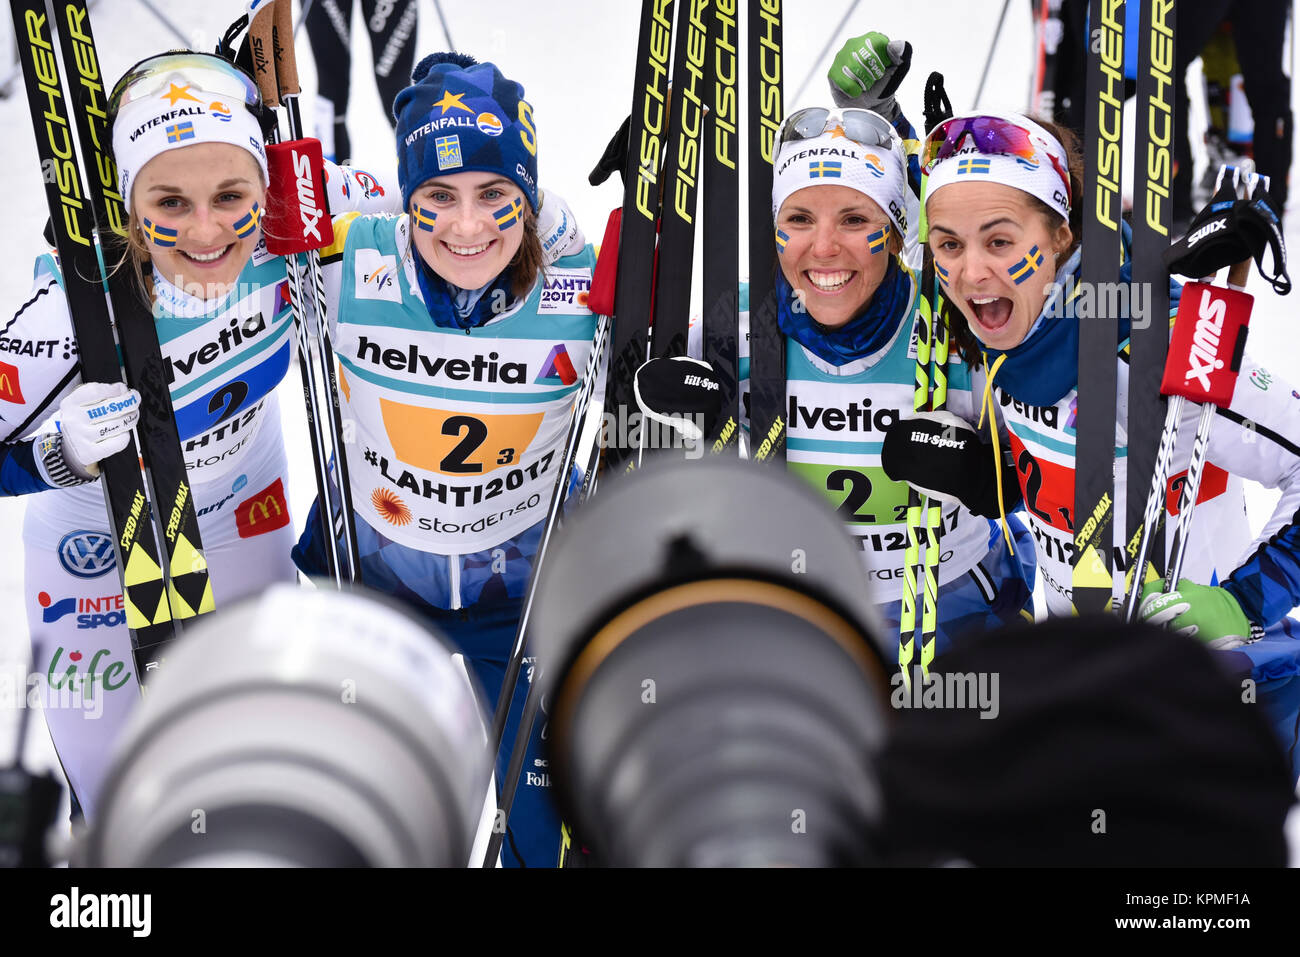 Sweden's relay team celebrates after finishing second in women's 4 x 5 k relay at the 2017 World Nordic Ski Championships, - Stock Image